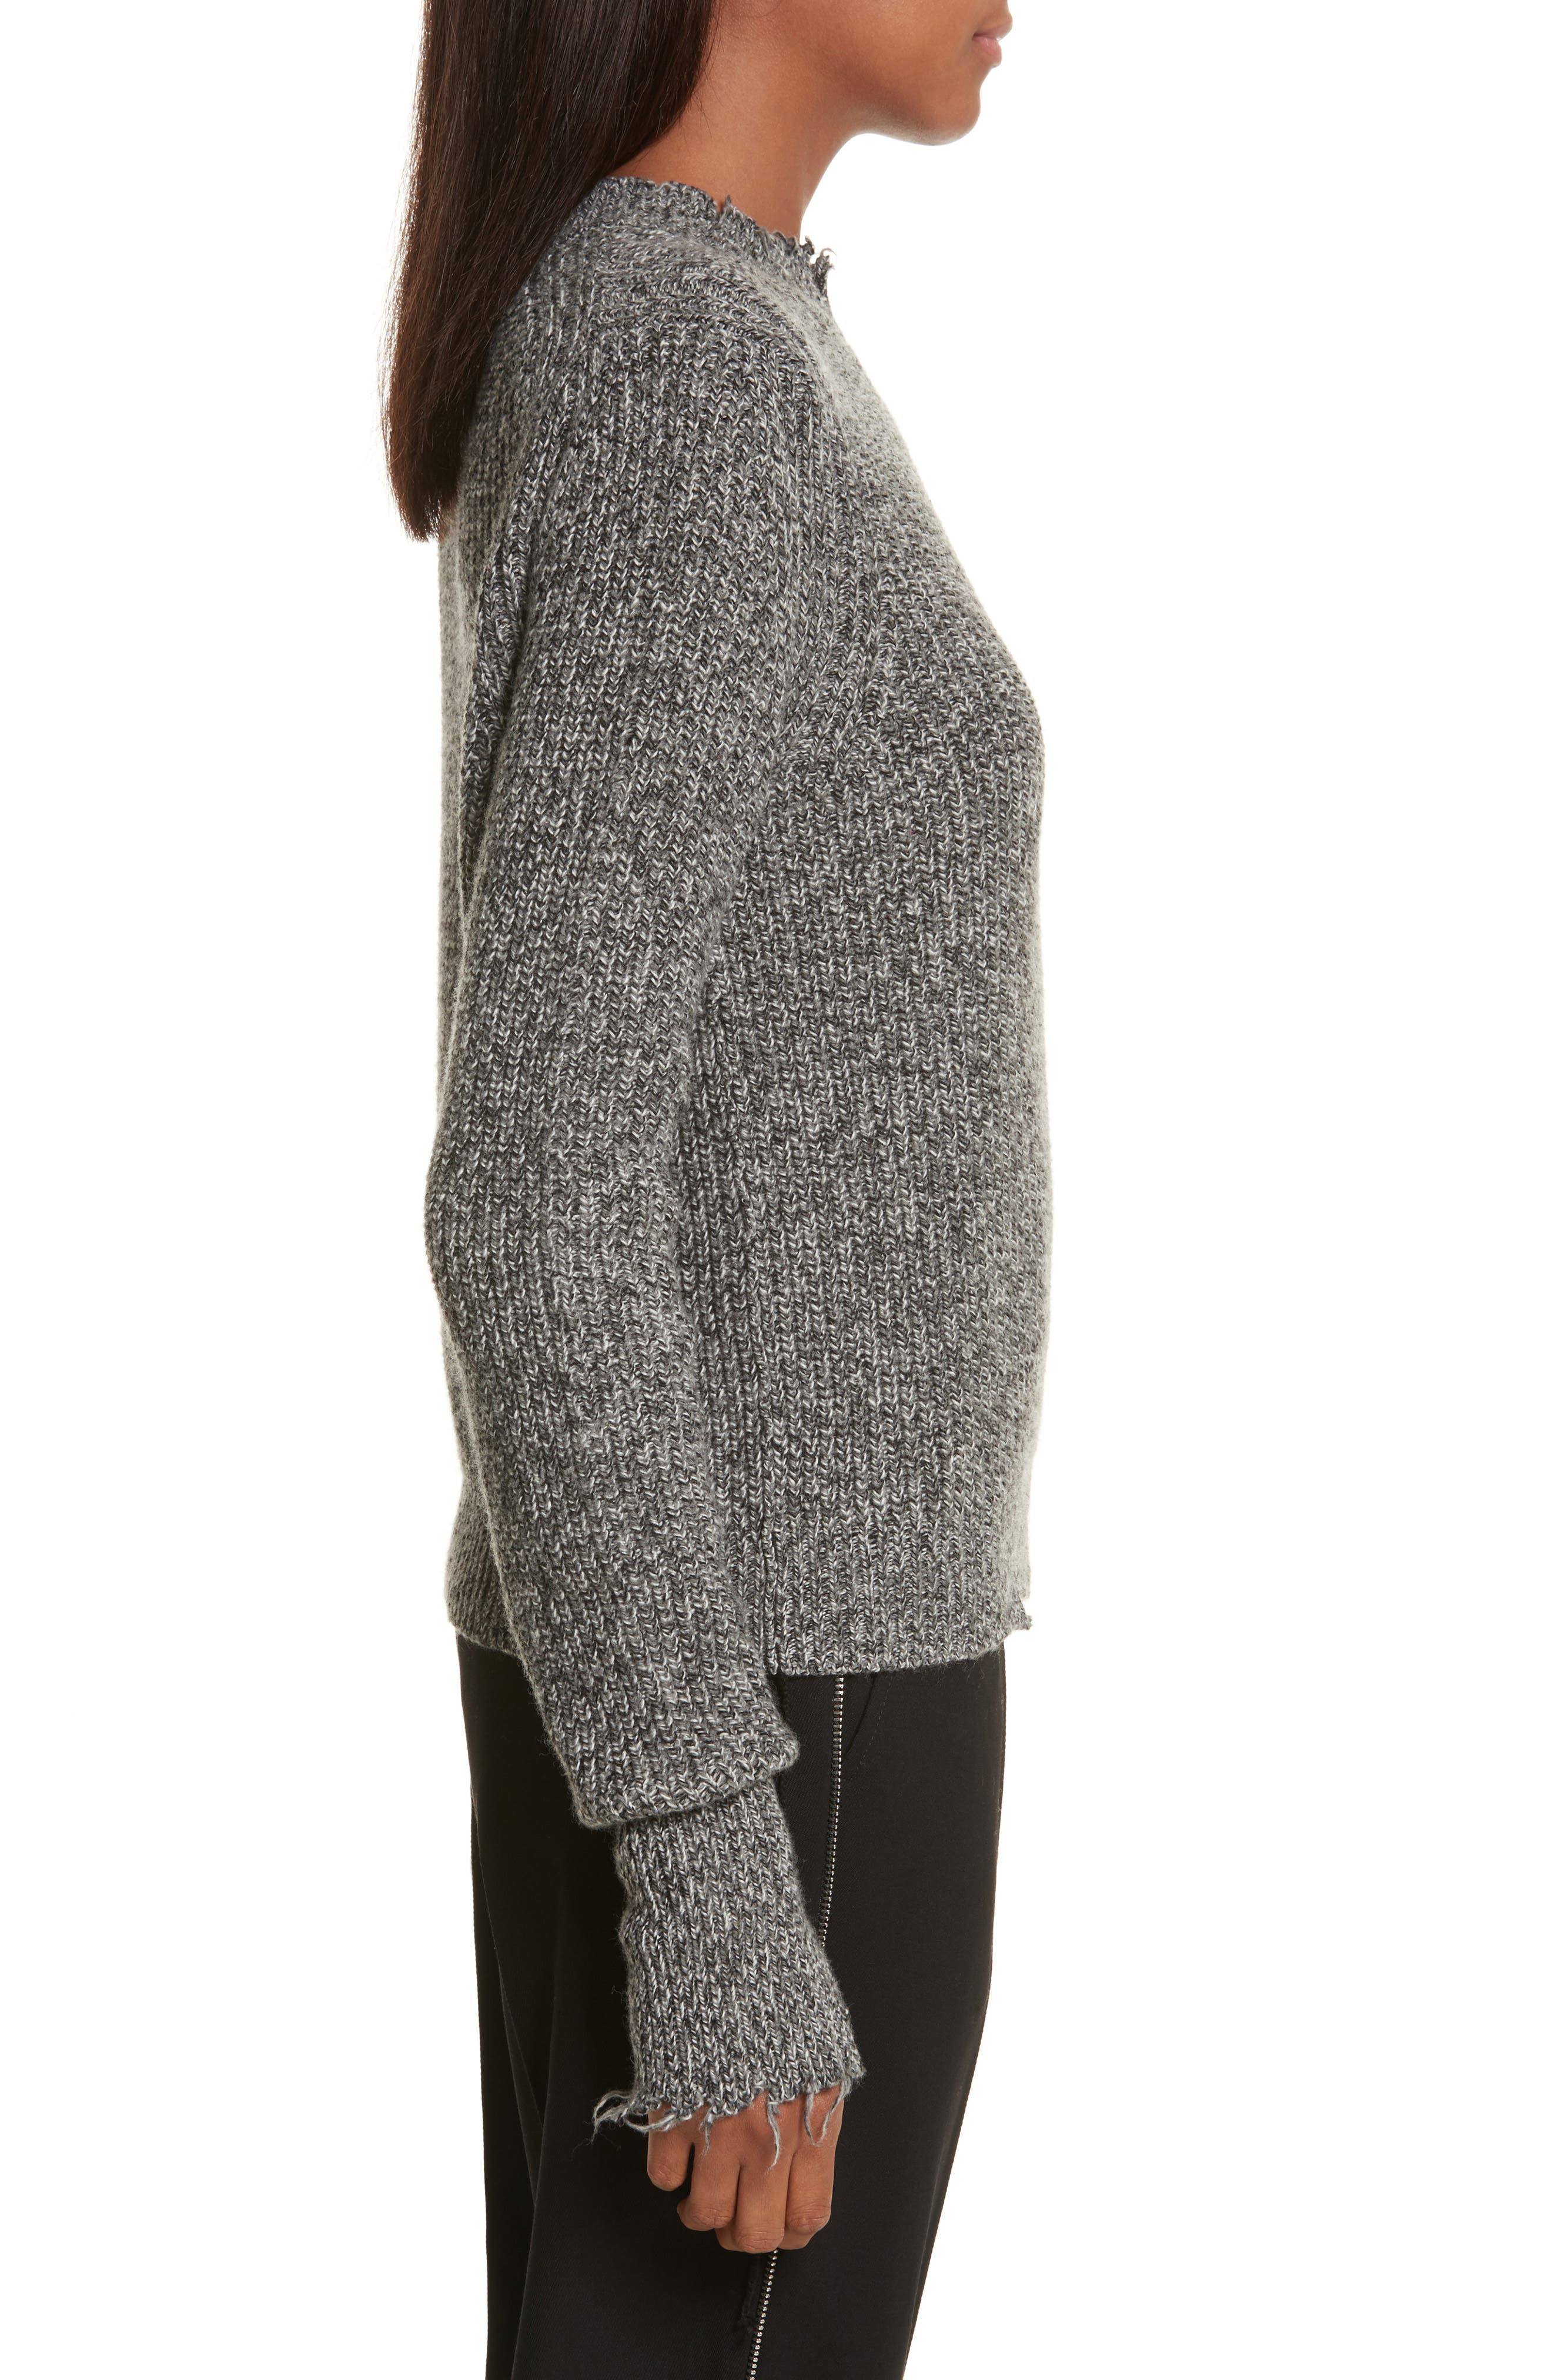 Grunge Marl Sweater,                             Alternate thumbnail 3, color,                             Charcoal